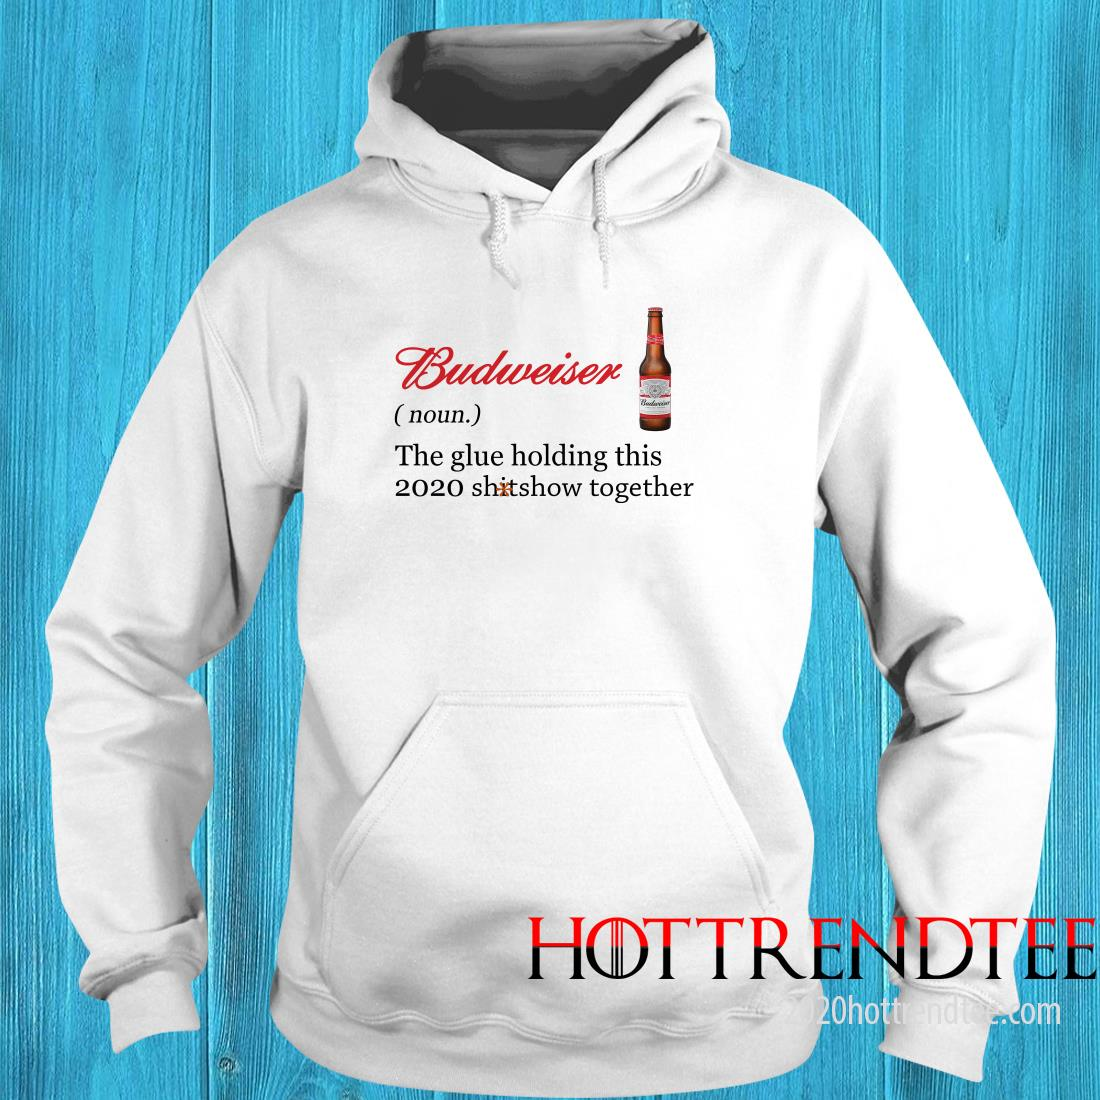 Official Budweiser The Glue Holding This 2020 Shitshow Together Hoodie